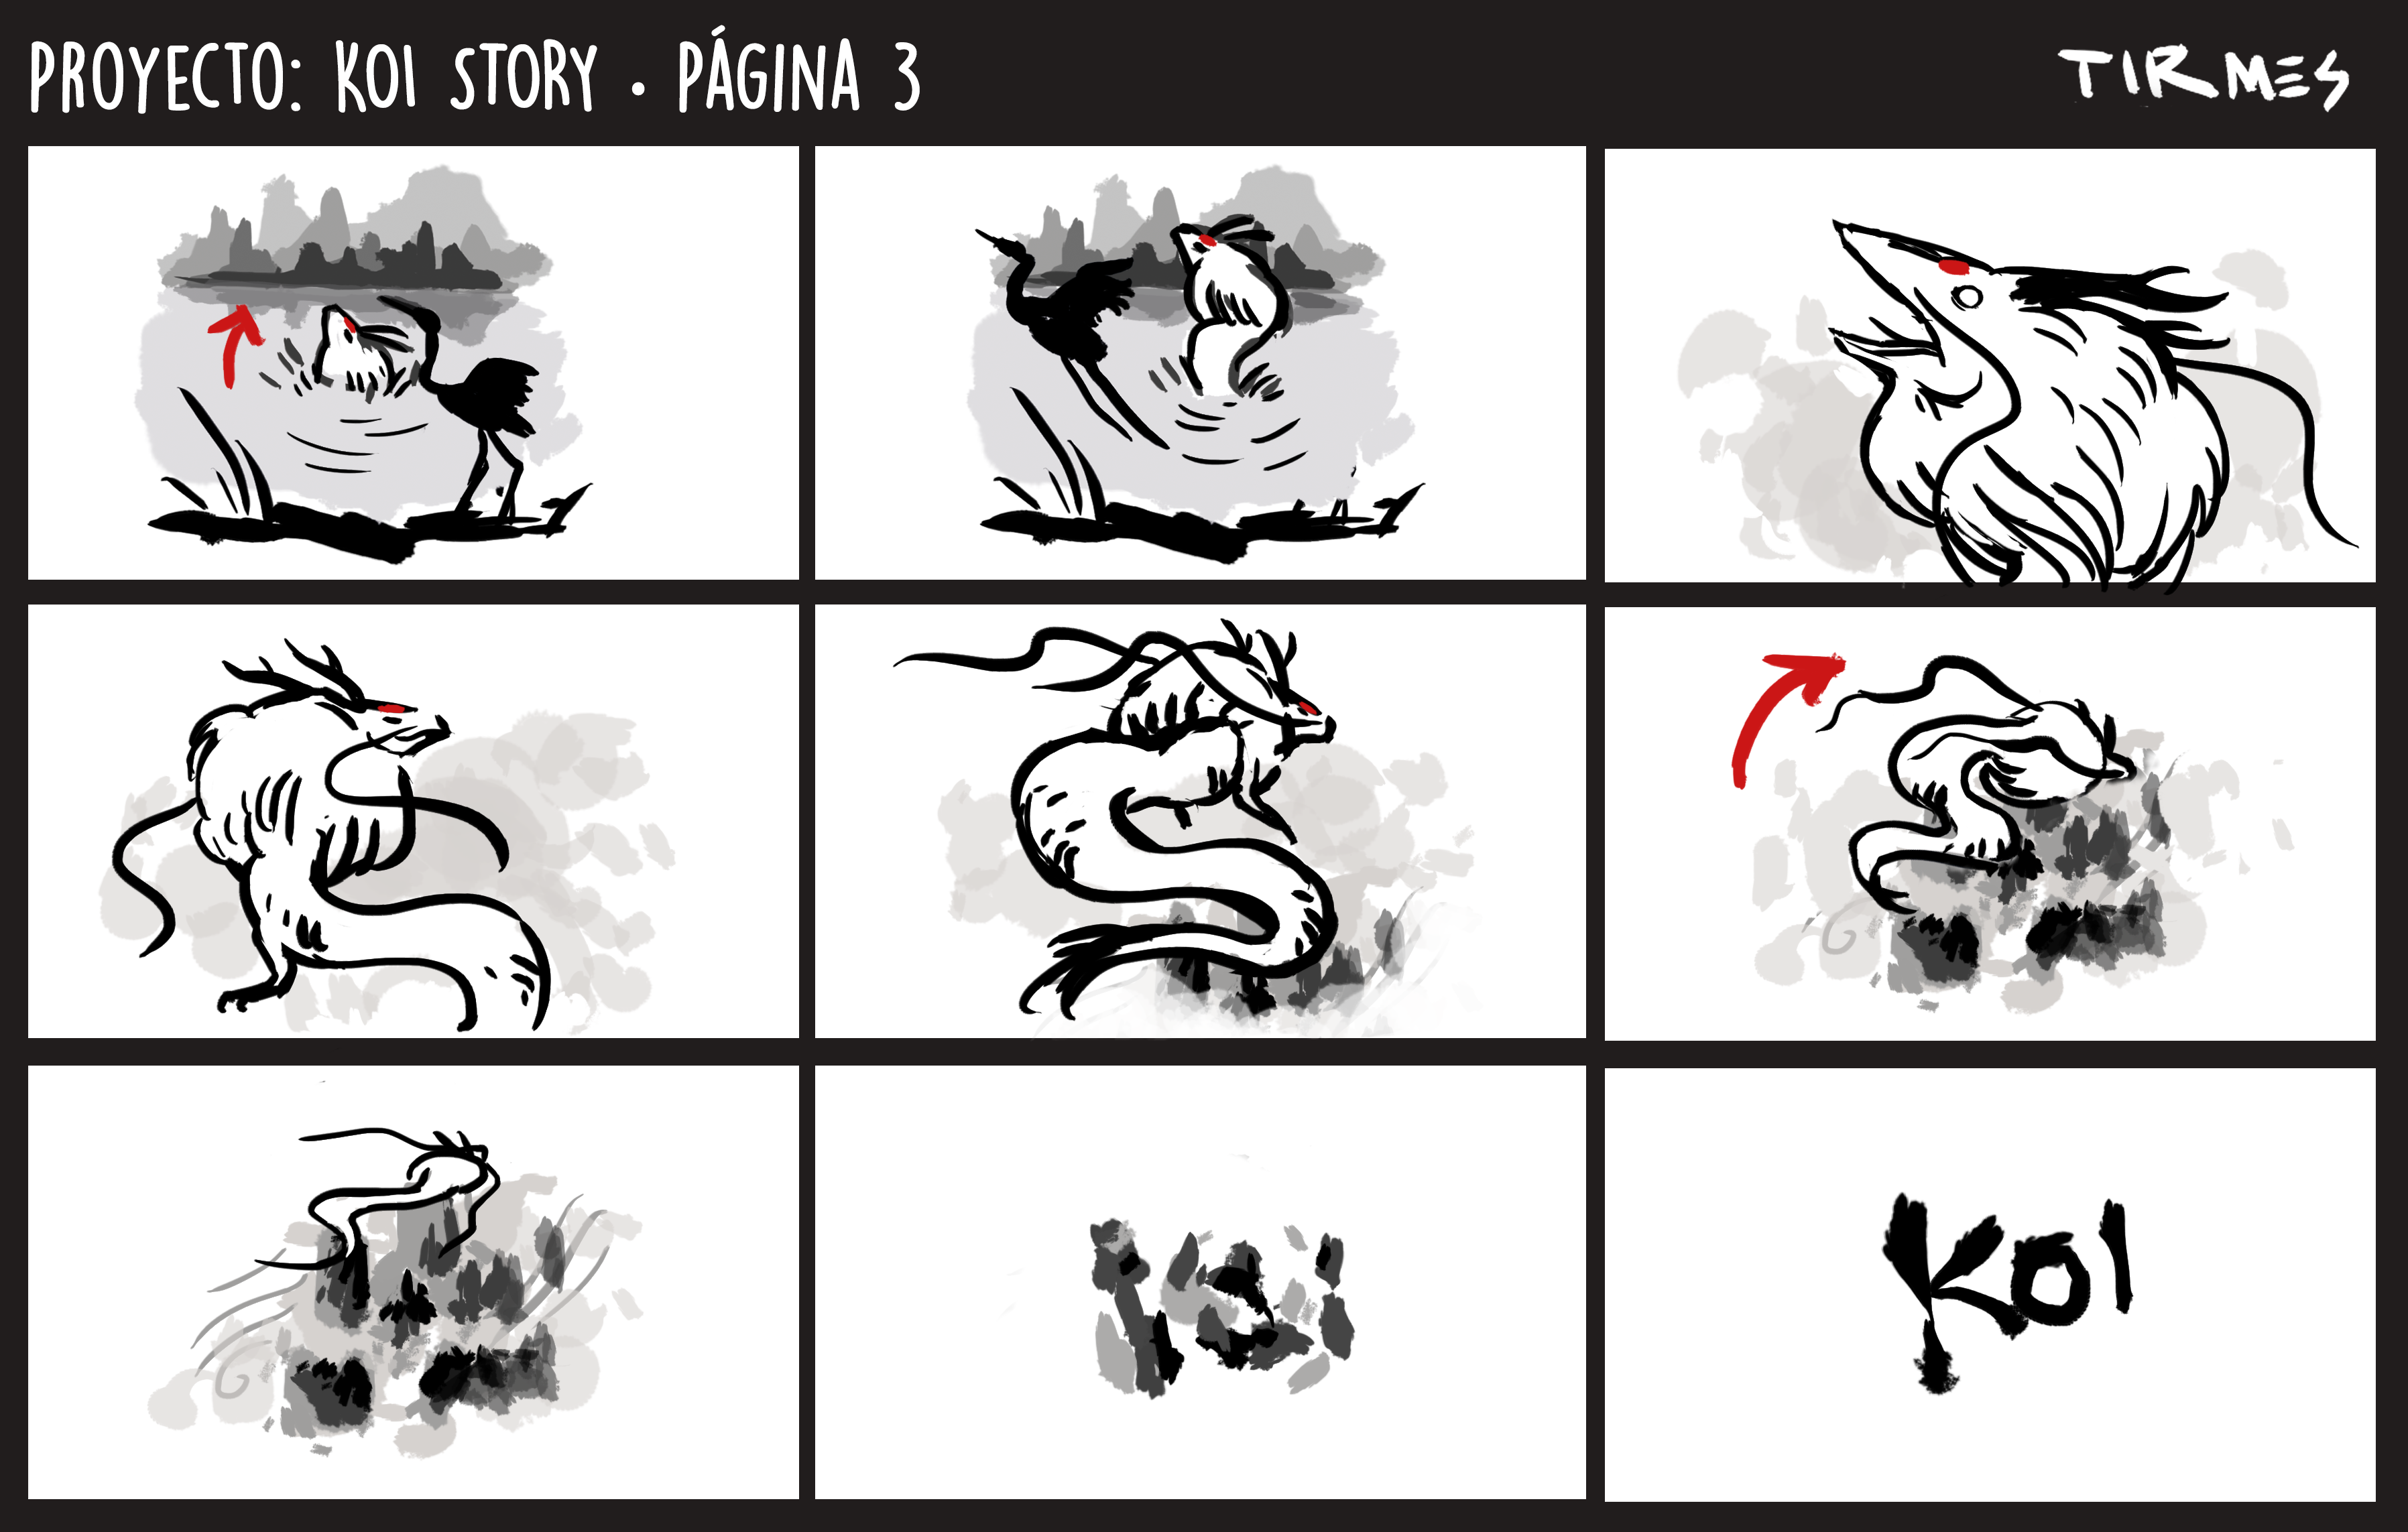 Storyboard page 3